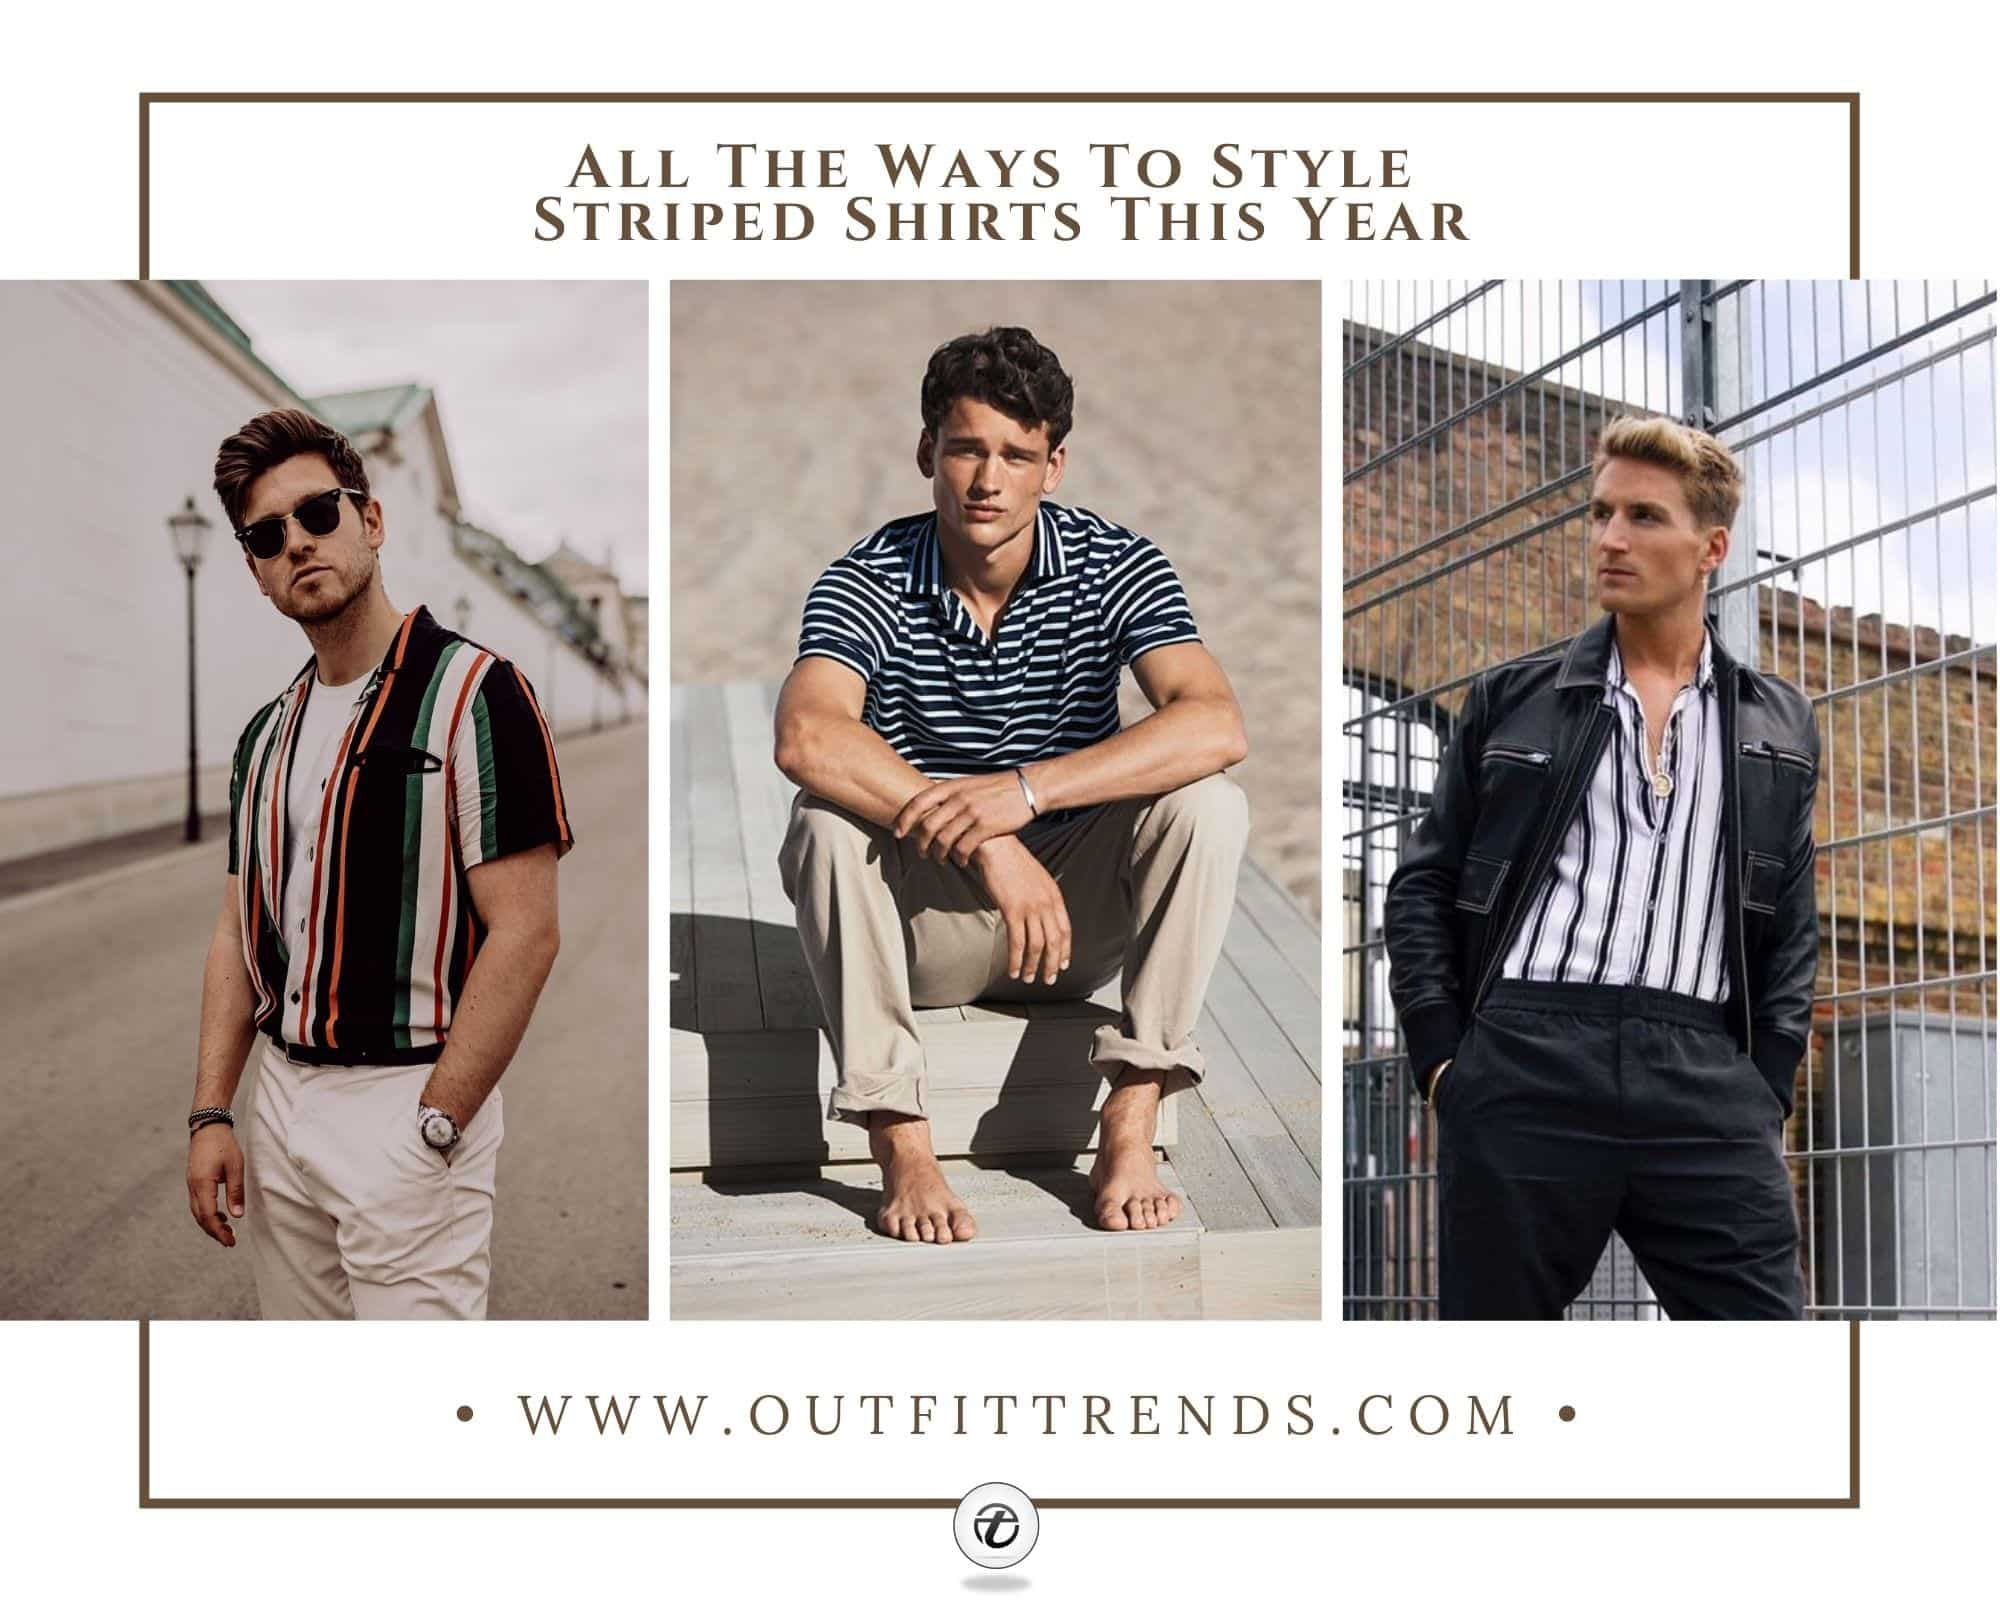 Best Striped Shirts for Men: 20 Ways to Wear & Style Stripes